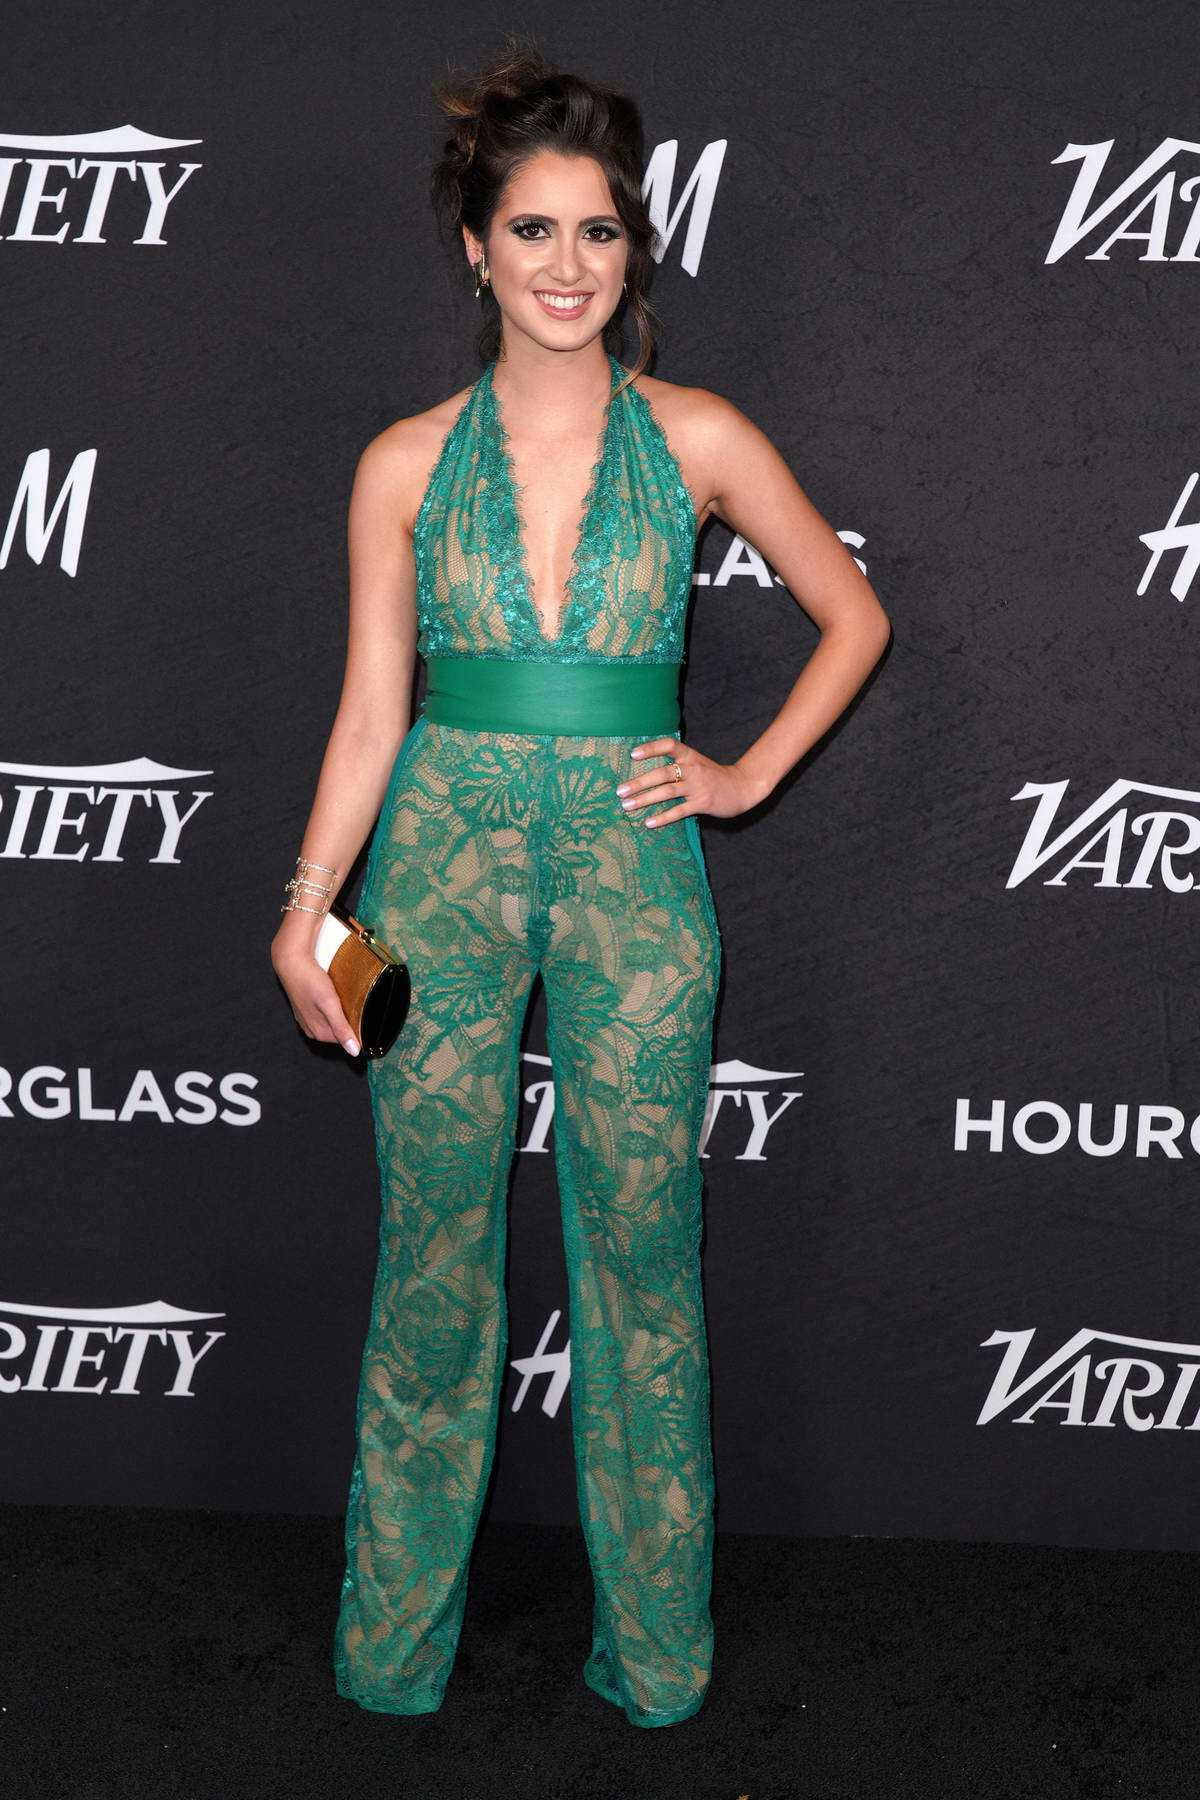 Laura Marano attends 'Variety Annual Power of Young Hollywood' in Los Angeles